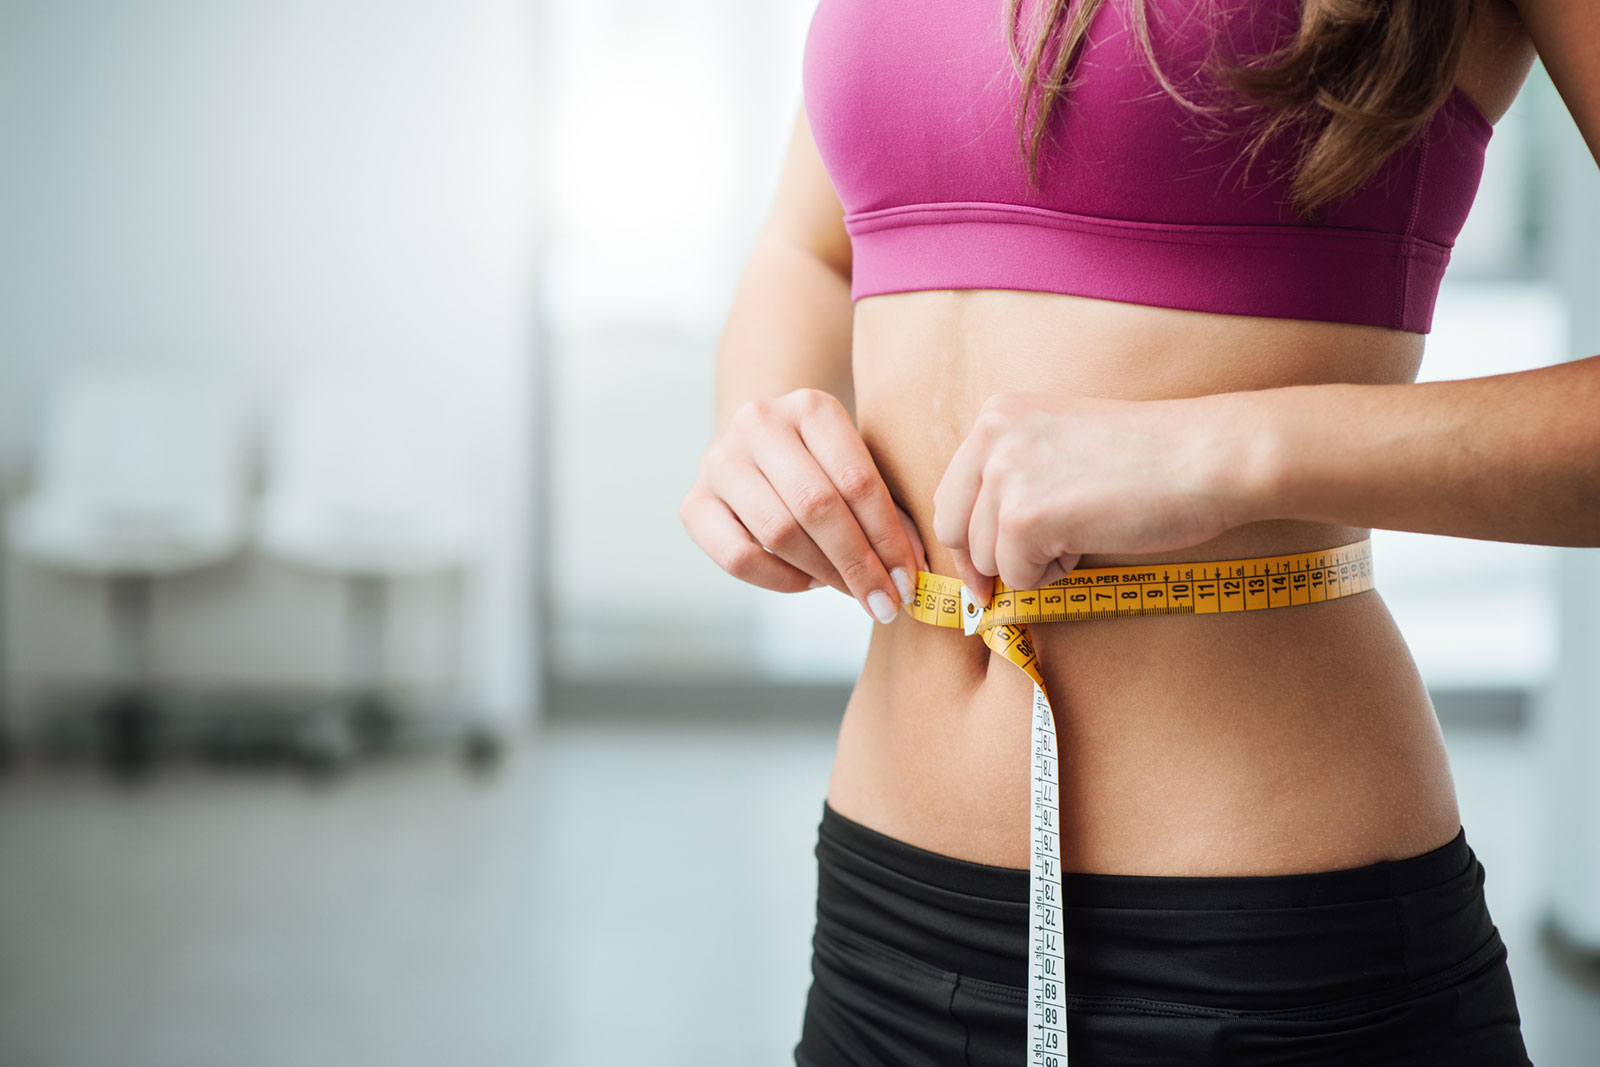 How to prevent loose skin weight loss photo 5